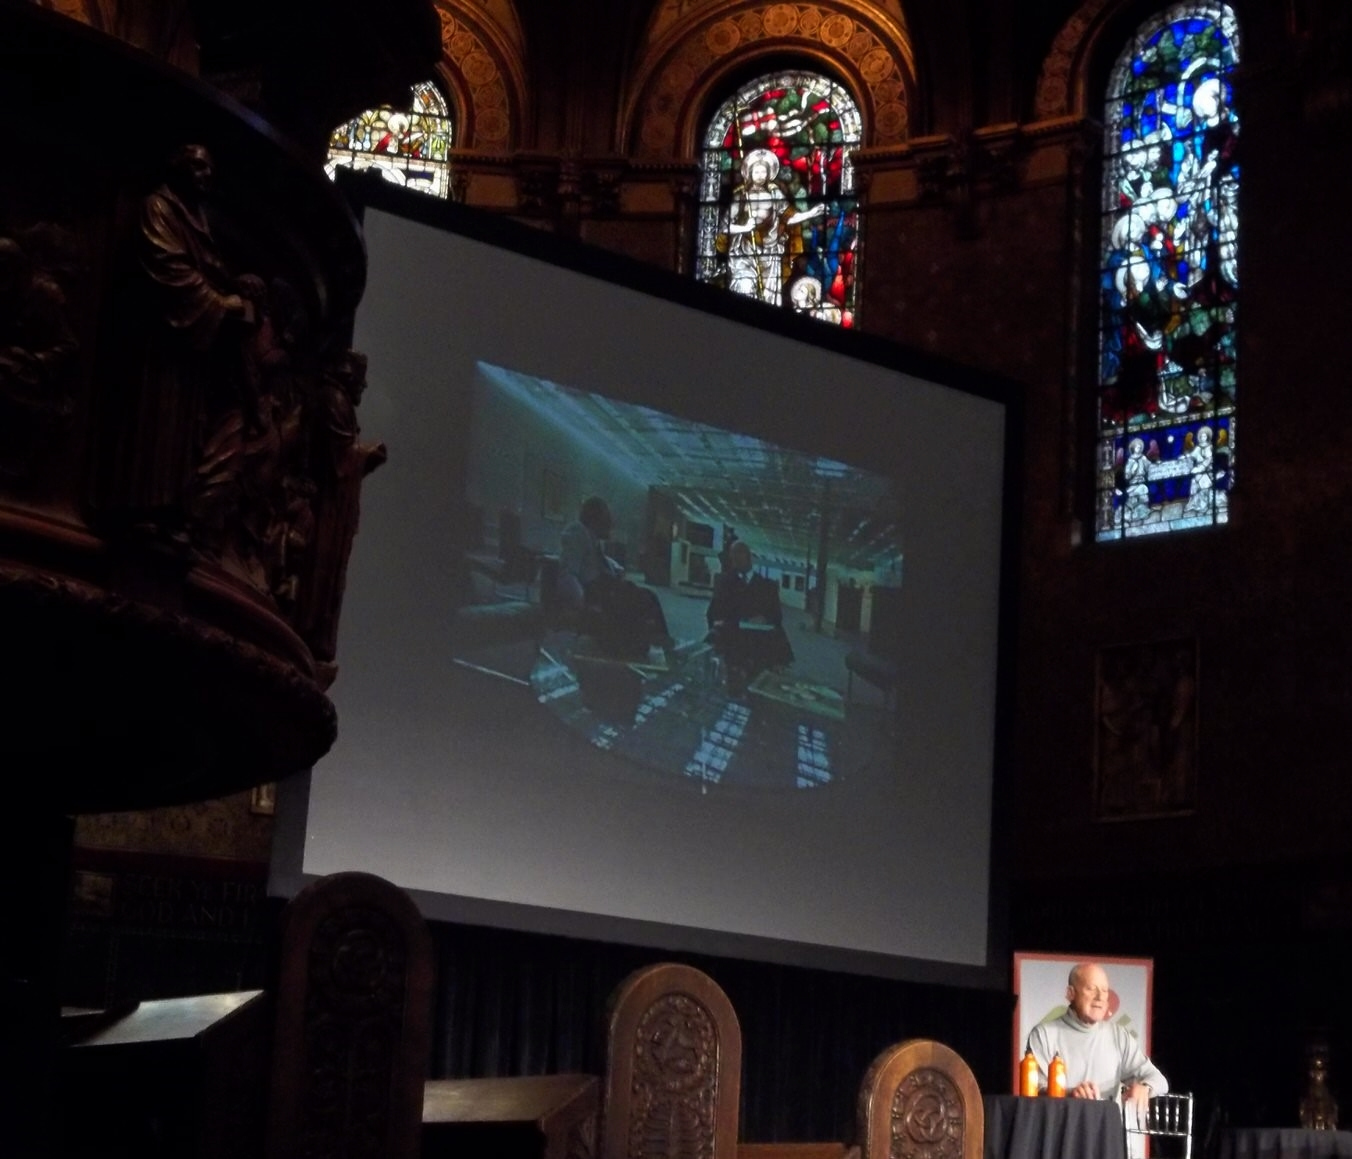 Norman Foster, Trinity Church, Boston. Slide shows Foster with architecture iconoclast Buckminster Fuller, Sainsbury Ctr. Norwich